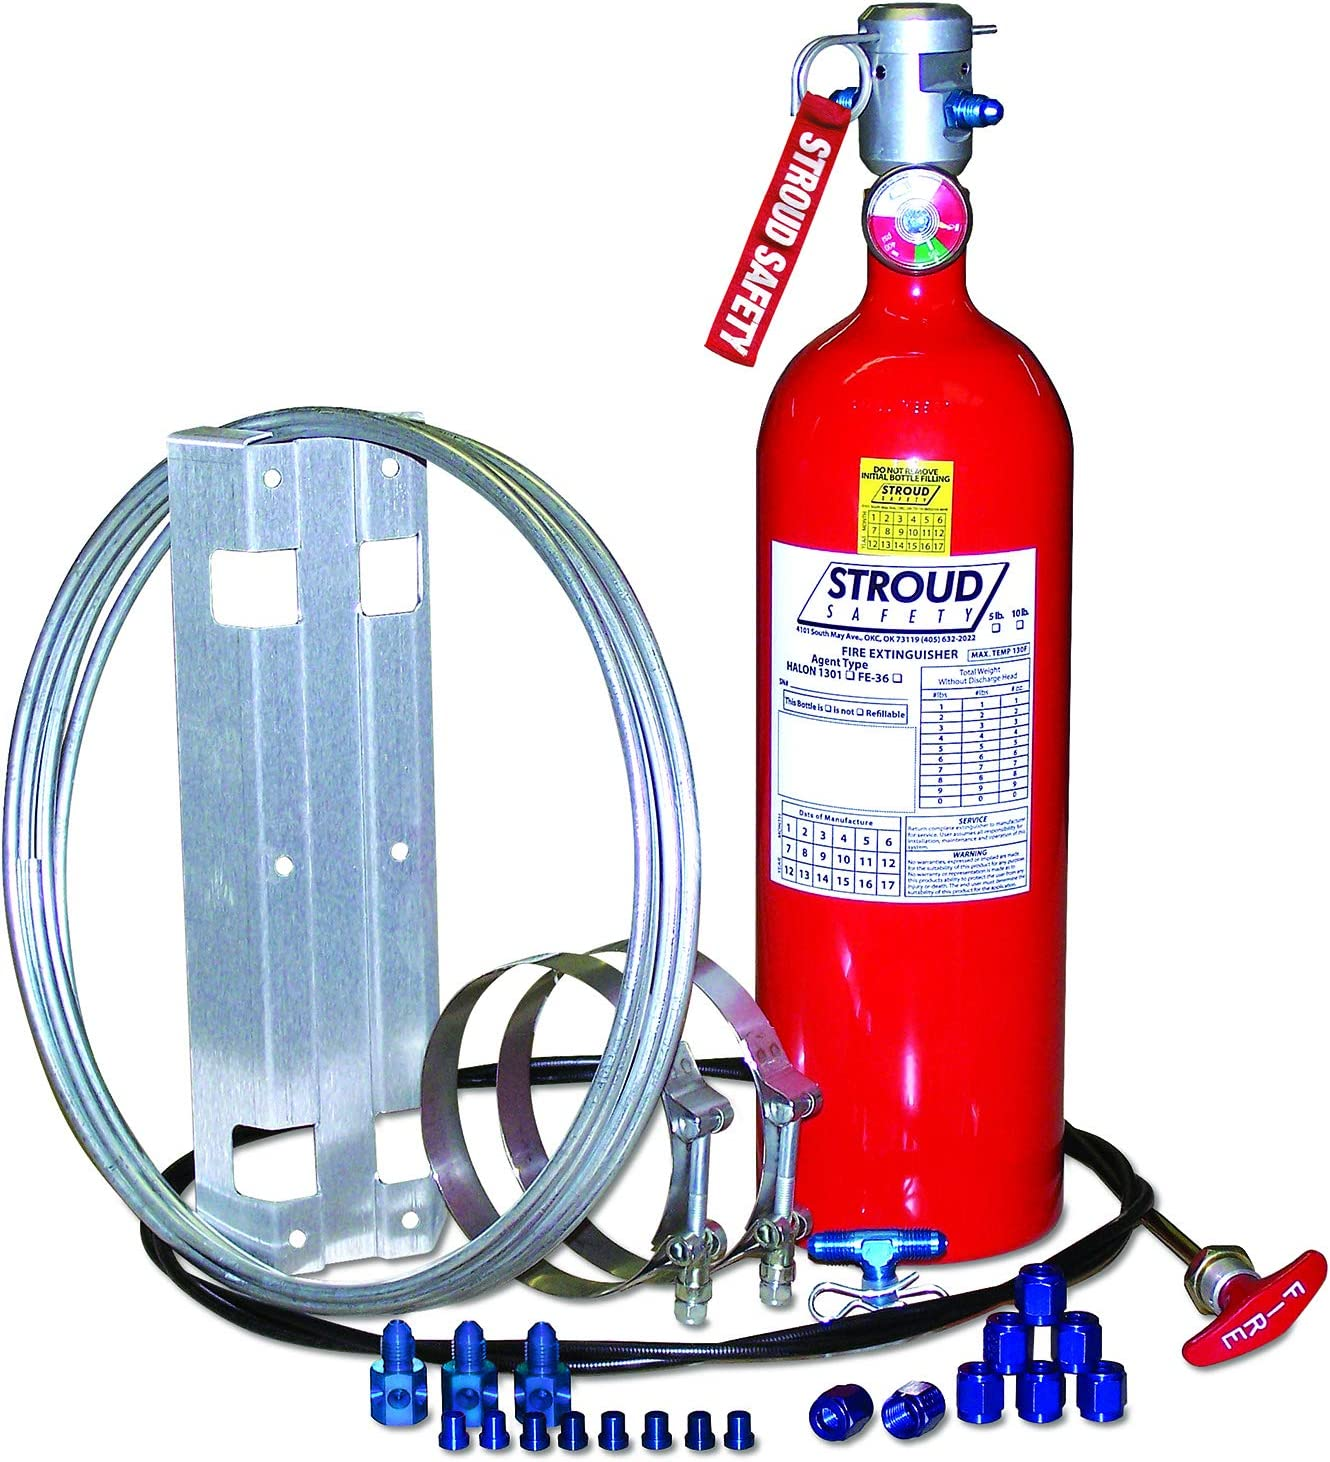 Stroud Safety 9302 5# FE-36 Fire Suppression System